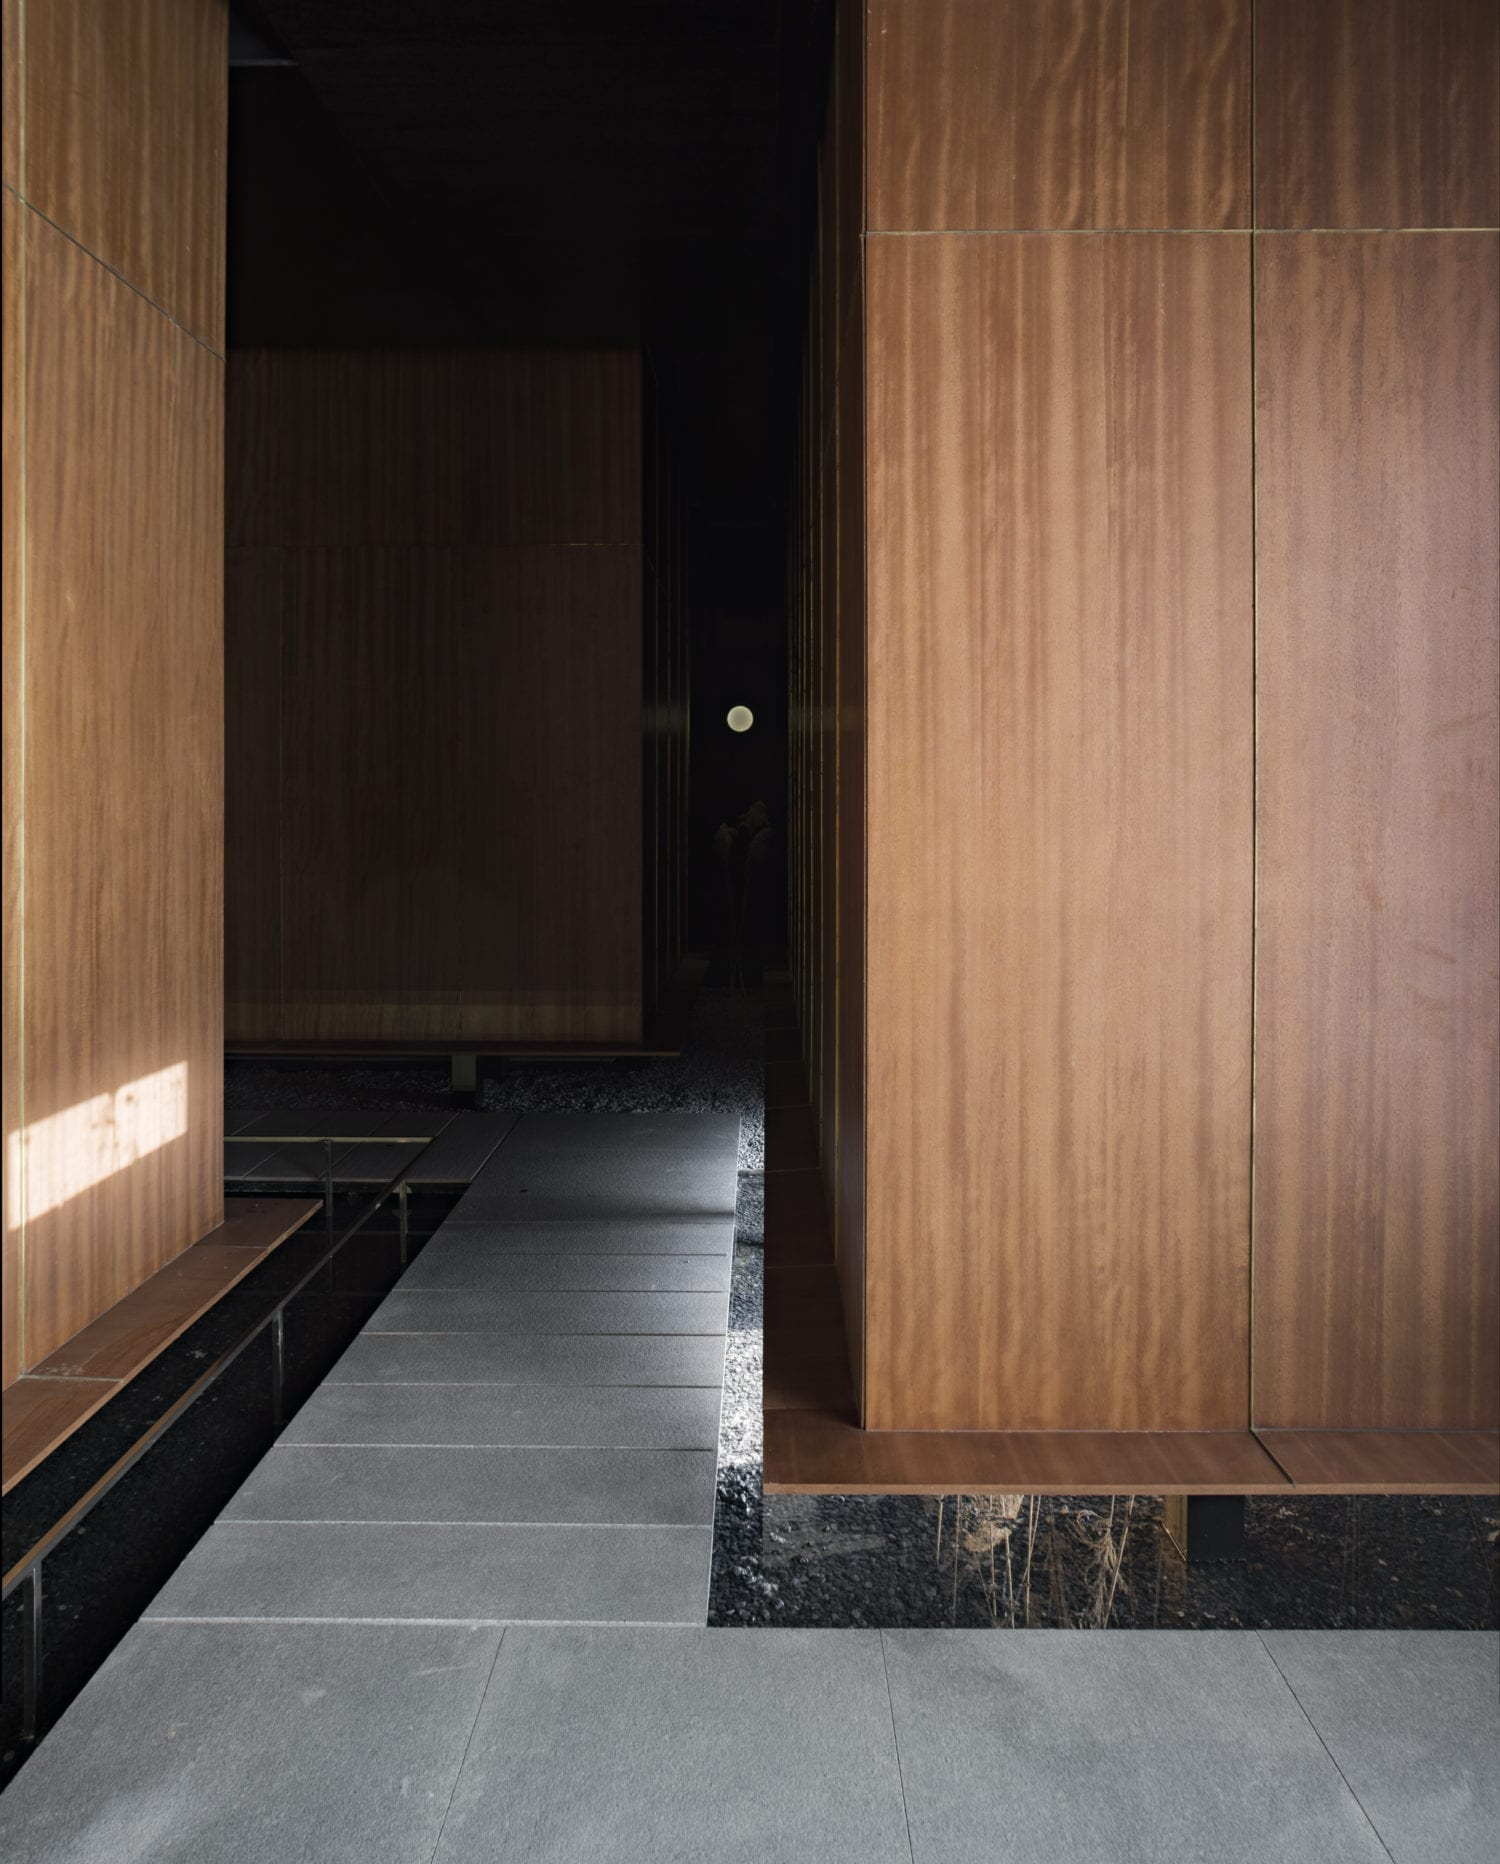 Meditation Hall In Huanghua China By Hil Architects Yellowtrace 11